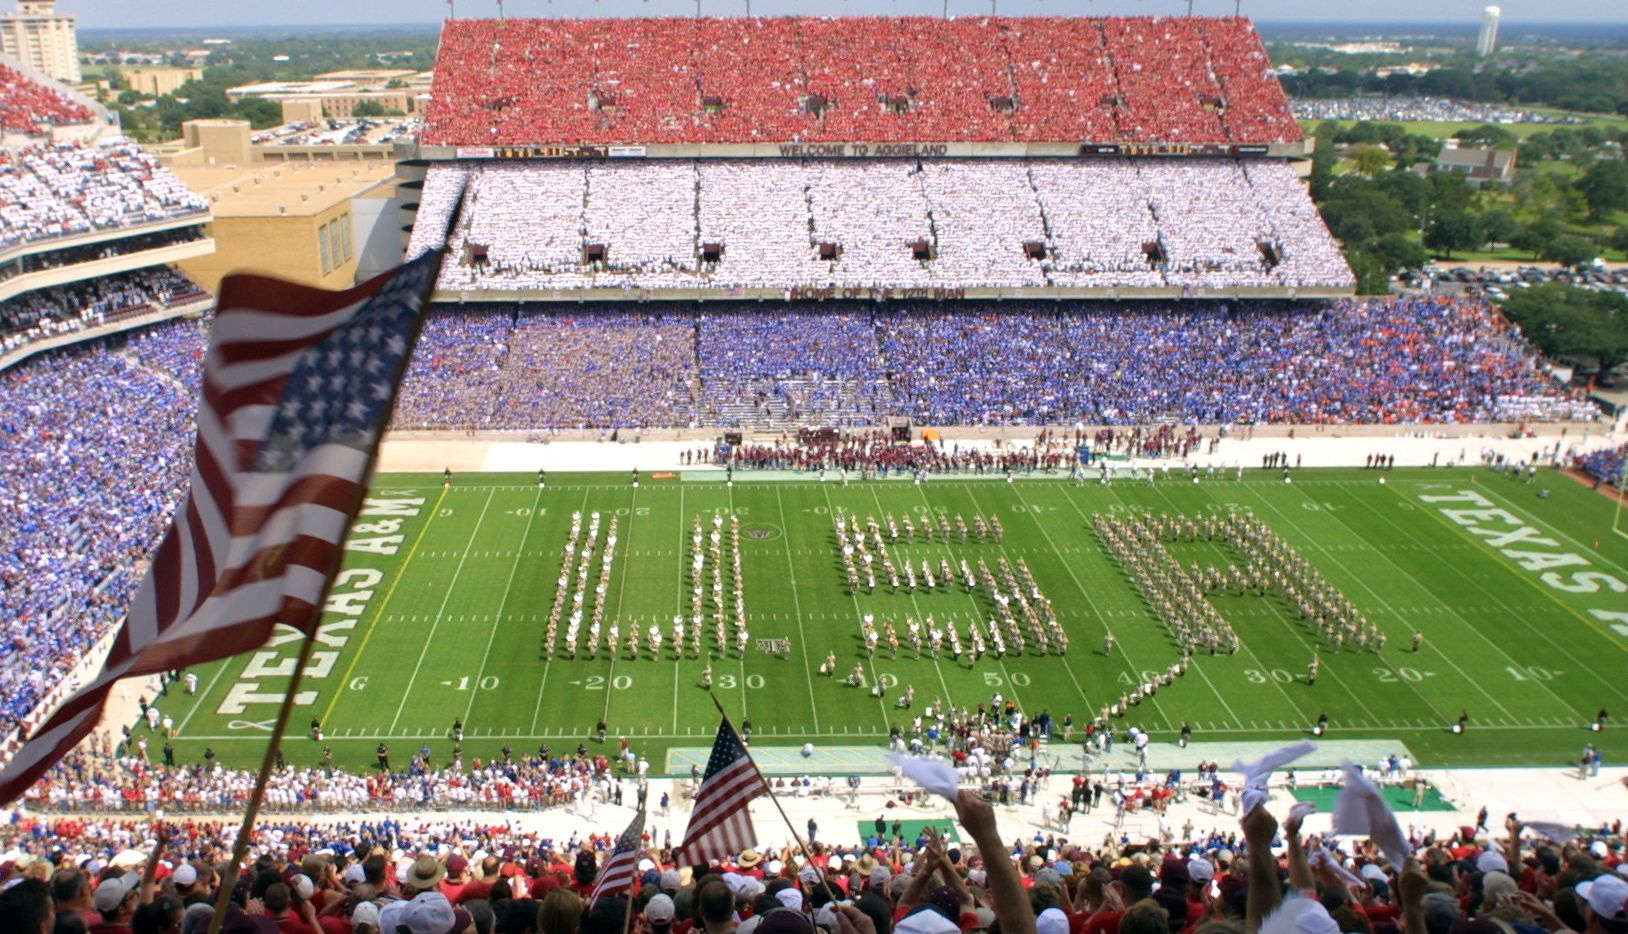 The Fightin' Texas Aggie Marching Band forms a 'USA' on Kyle Field as fans on the three different levels wore red, white, and blue t-shirts in a patriotic tribute during the halftime show in the Aggies win over OSU, September 22, 2001.  T-shirts were sold on campus before the game to raise money for the relief efforts. (Erich Schlegel/The Dallas Morning)